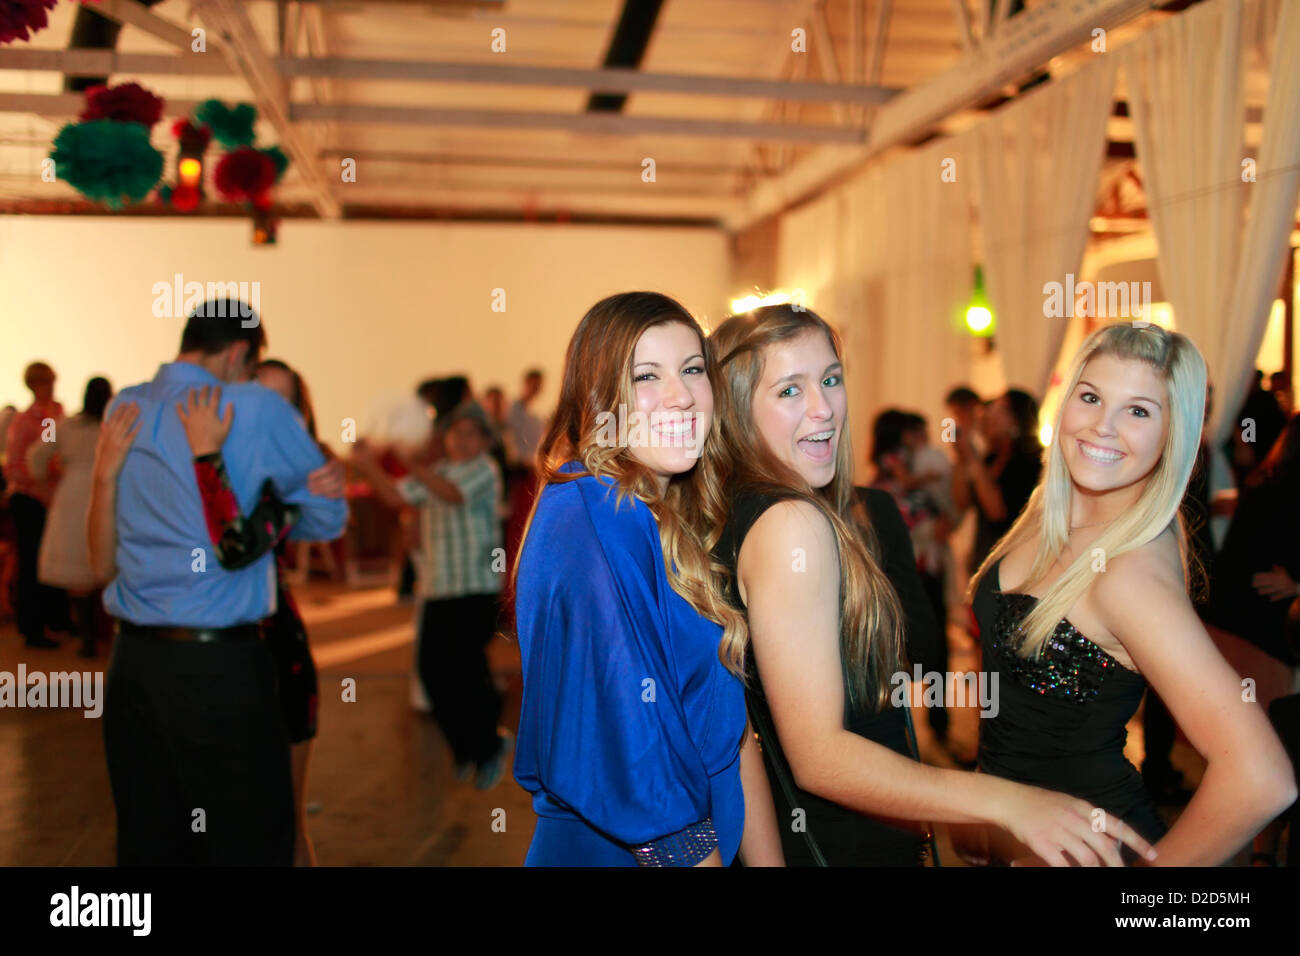 64feaf166 Teenage girls dancing at birthday party Stock Photo  53150289 - Alamy